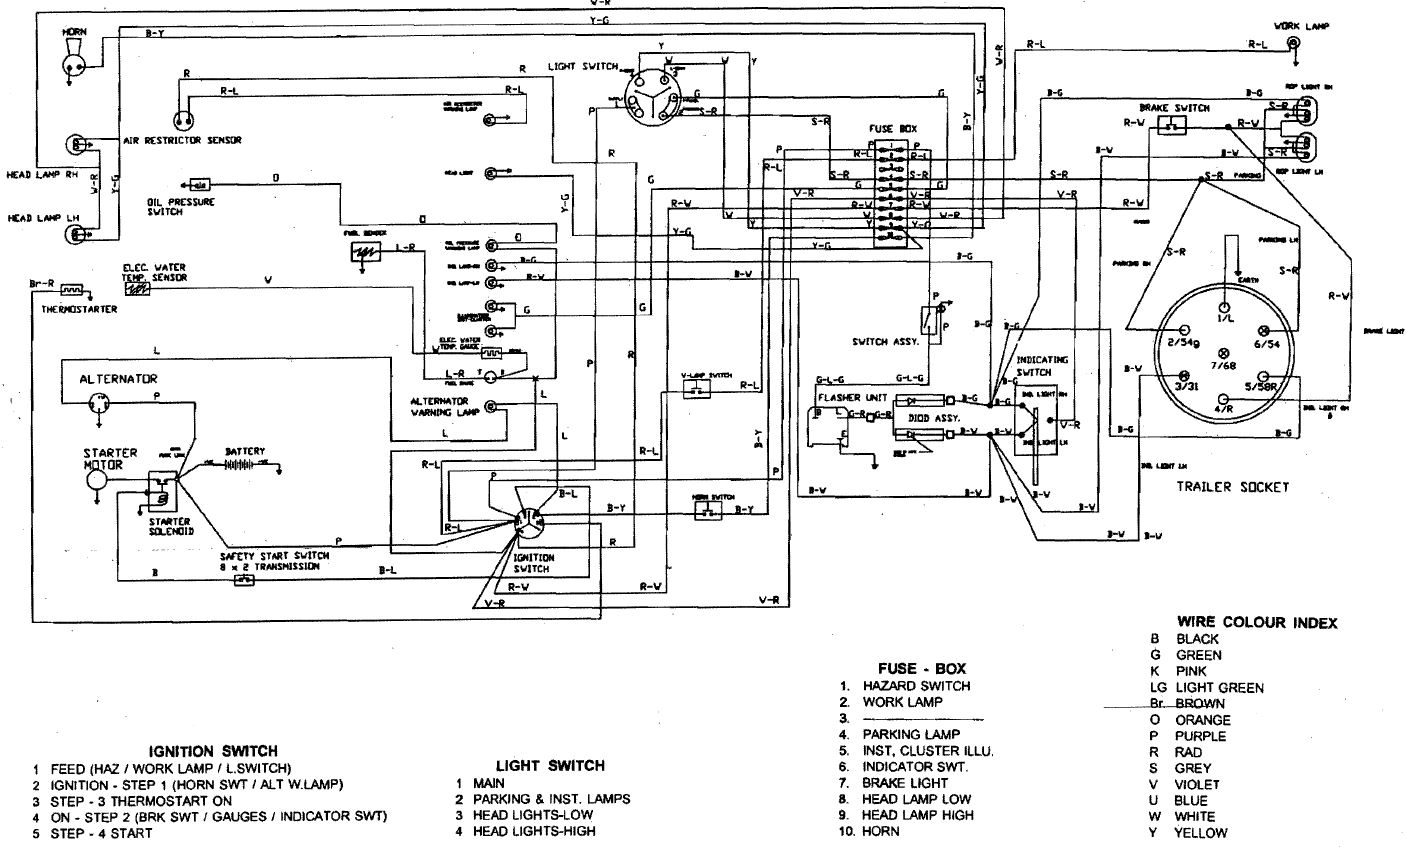 International 1700 Truck Ignition Wiring Diagram | Wiring Diagram on farmall 450 wiring diagram, farmall 706 diesel tractor diagram, ih 354 tractor, ih tractor logo, ih tractor oil pump, farmall h parts diagram, ih tractor speaker, international 244 tractor diagram, farmall a wiring diagram, farmall 12 volt wiring diagram, ih tractor parts, ih tractor power steering, ih 706 wiring-diagram, two wire alternator wiring diagram, ih tractor manuals, ih tractor forum, farmall h electrical wiring diagram, 354 international tractor diagram, ih tractor fuel pump, ih 244 tractor,